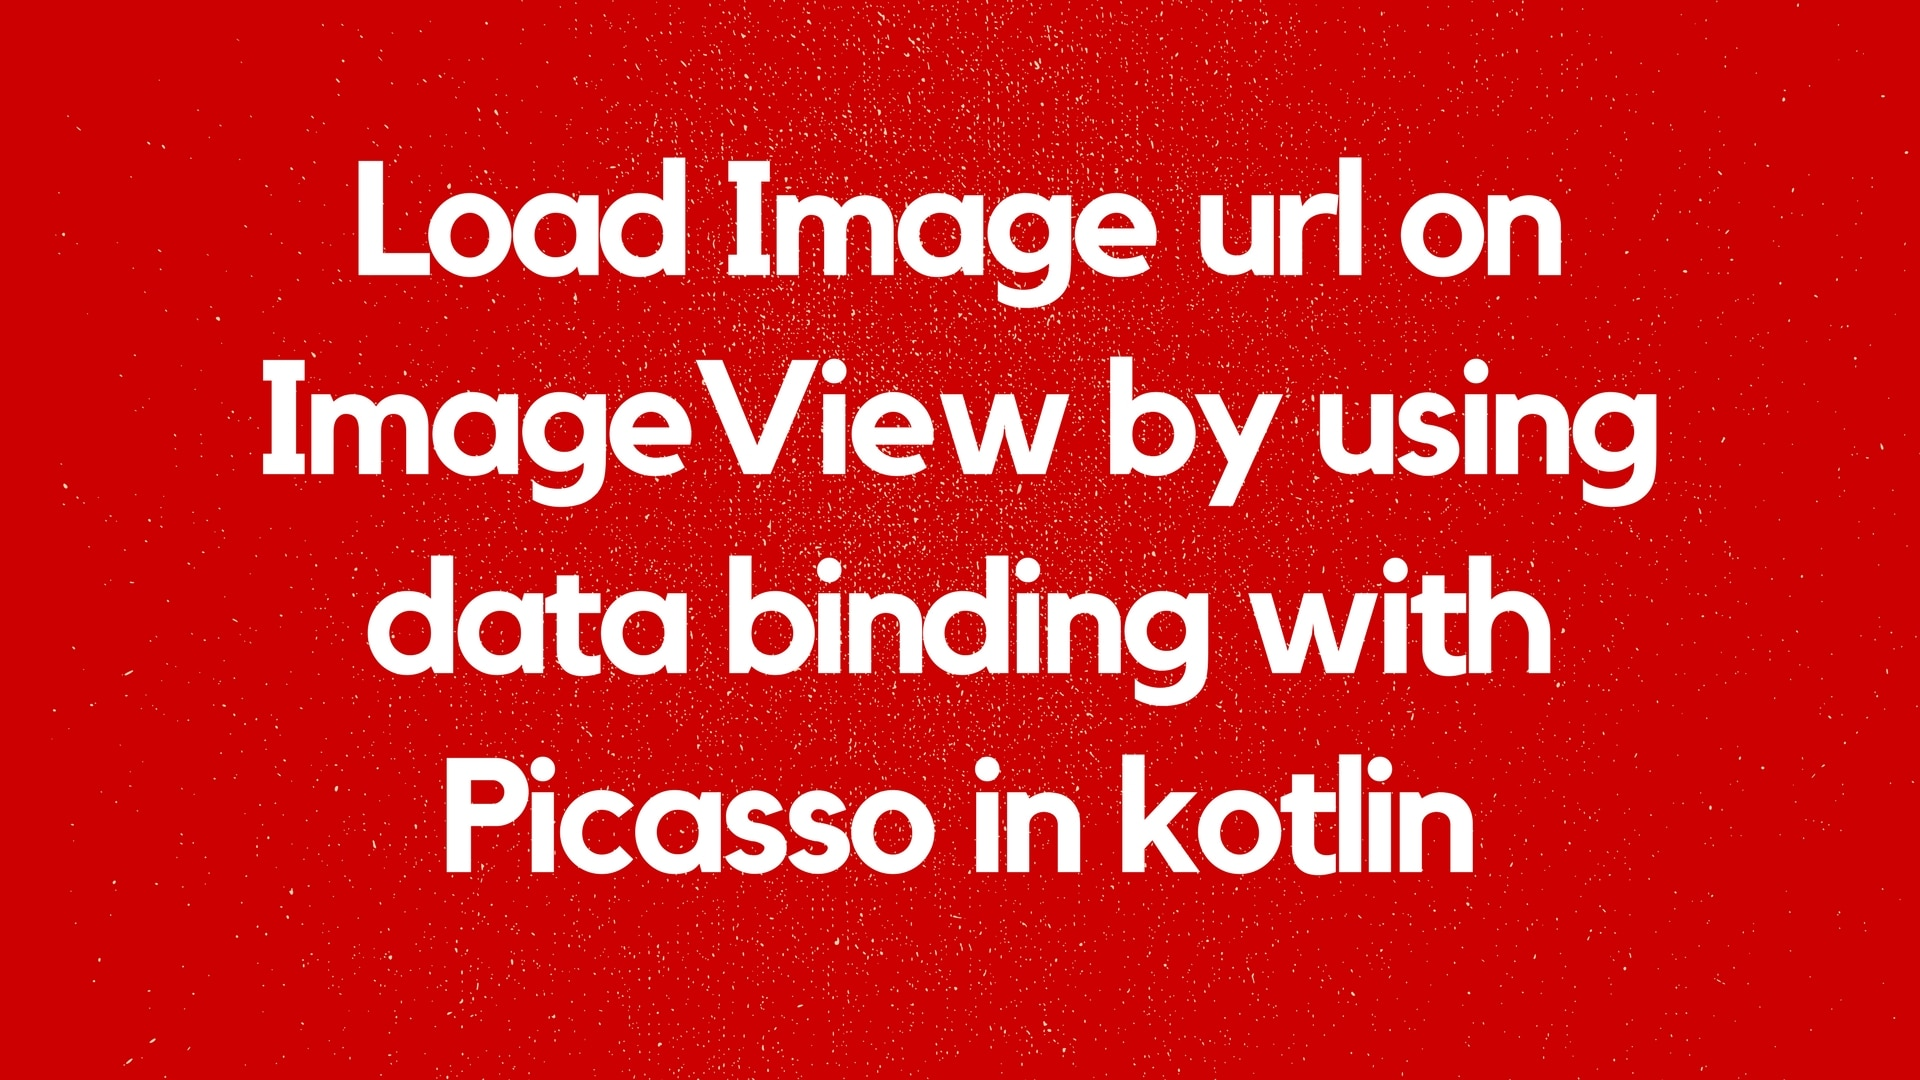 Load Image url on ImageView by using data binding with Picasso in